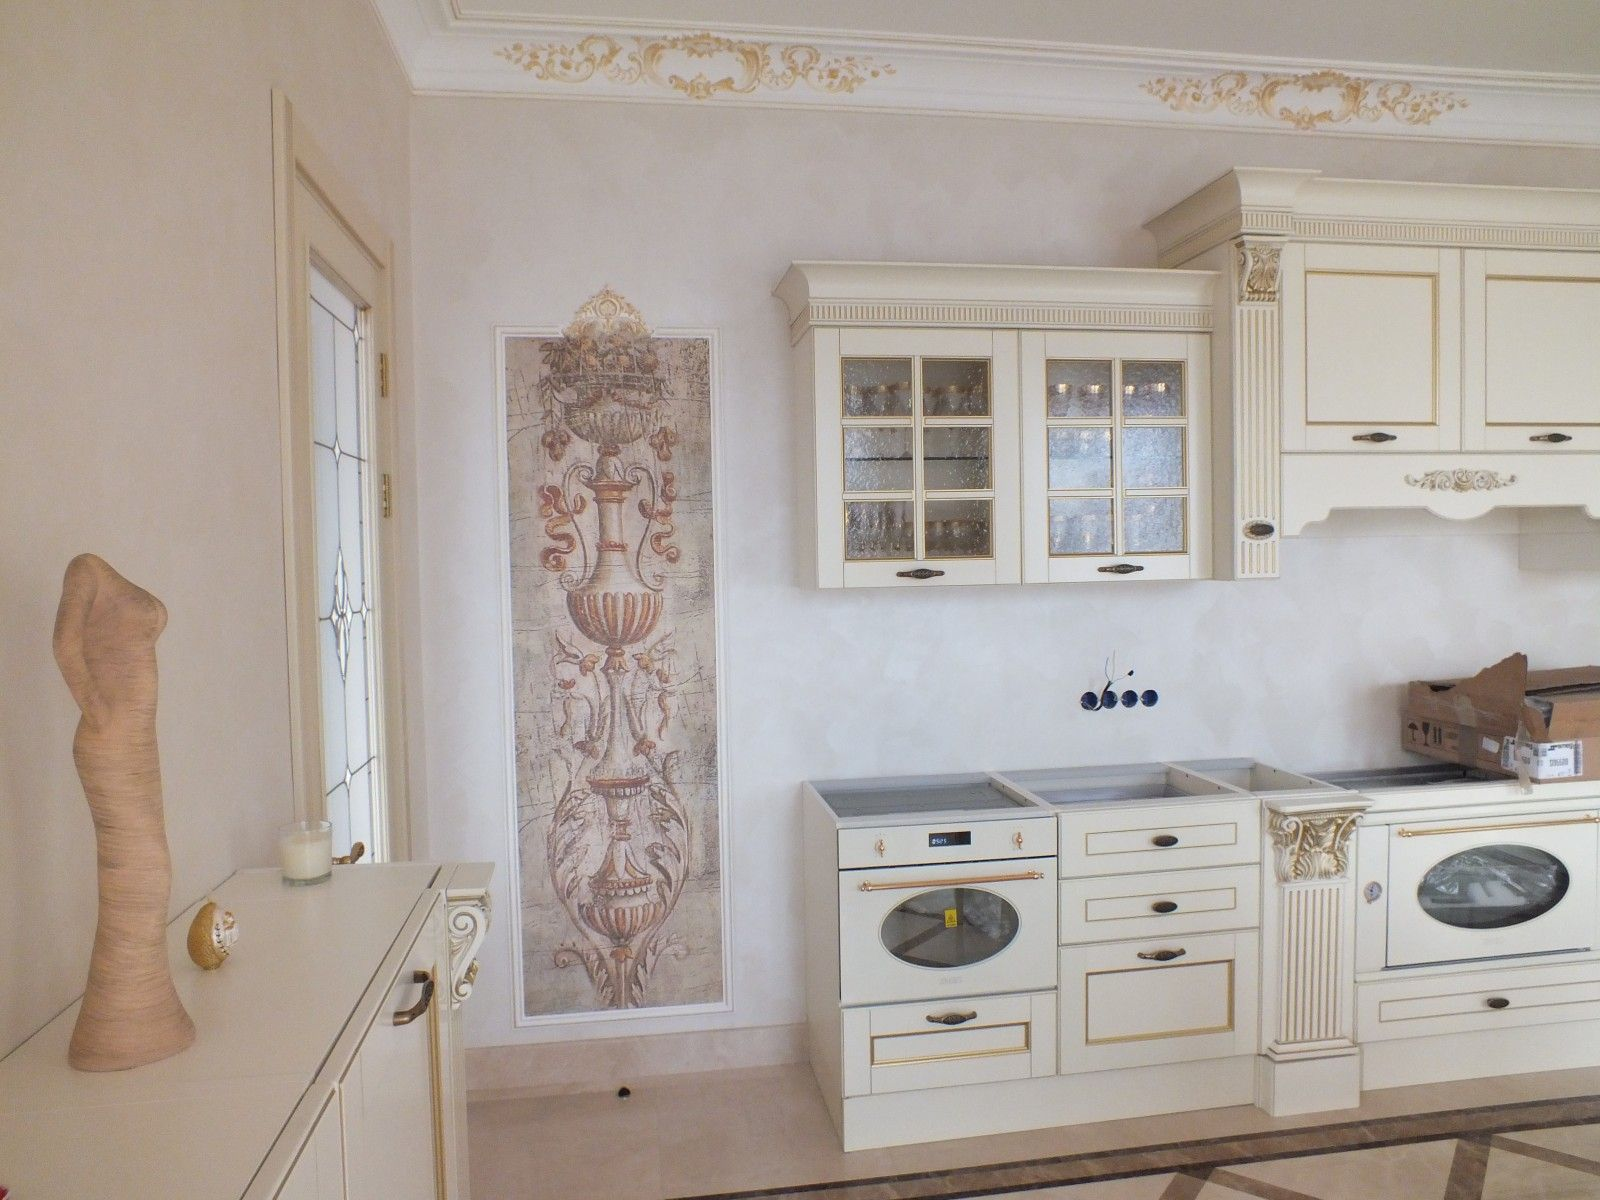 Kitchen fresco in the Renaissance interior looks very relevant and fills up the space